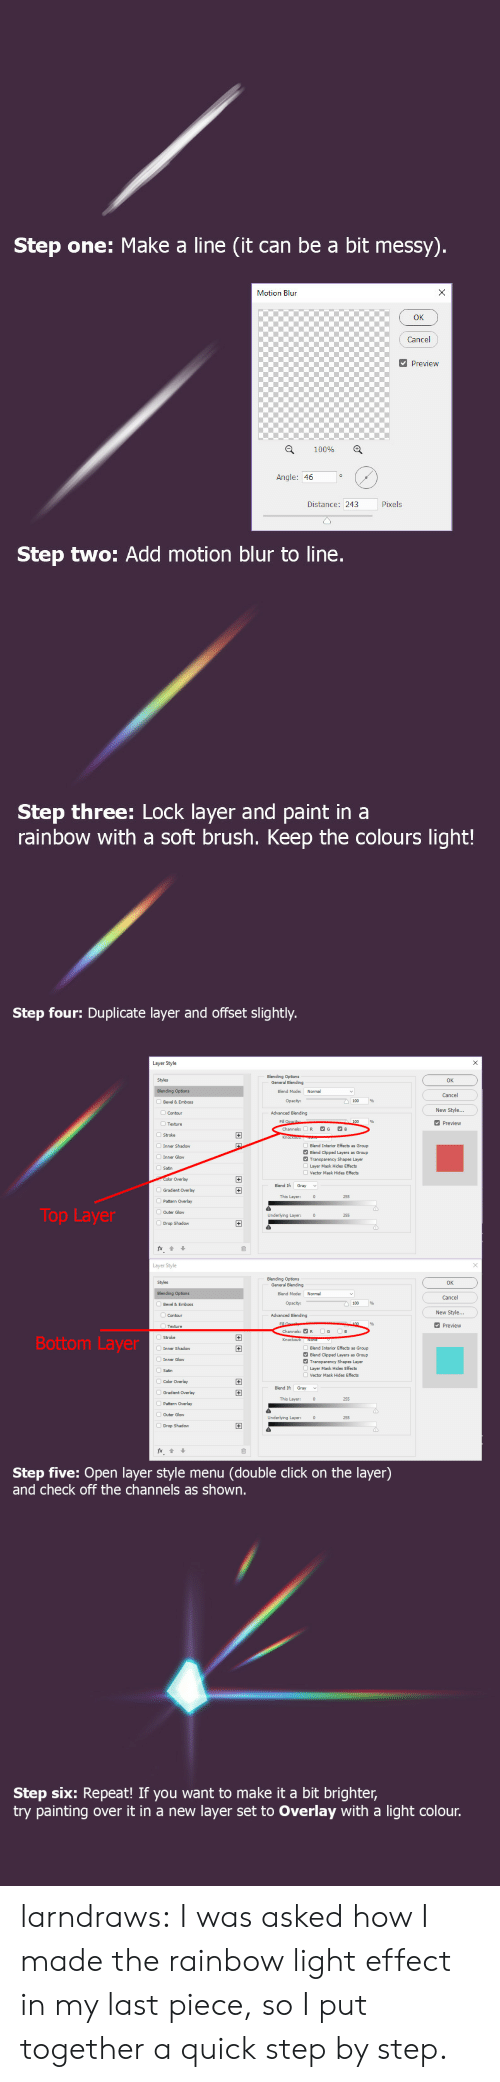 motion: Step one: Make a line (it can be a bit messy).  X  Motion Blun  Cancel  Preview  100%  Angle: 46  Pixels  Distance: 243  Step two: Add motion blur to line.  Step three: Lock layer and paint in a  rainbow with a soft brush. Keep the colours light!   Step four: Duplicate layer and offset slightly.  Layer Style  Blending Options  General Blending  Styles  OK  Blending Options  Blend Mode:  Normal  Cancel  Opacity:  Bevel & Emboss  New Style...  Advanced Blending  Contour  Fill Opacib  Channels:  Preview  Texture  G  B  R  +  Stroke  Inner Shadow  Blend Interior Effects  Blend Clipped Layers  Transparency Shapes Layer  s Group  Group  Inner Glow  Layer Mask Hides Effects  Satin  Vector Mask Hides Effects  Color Overlay  +  Blend If  Gray  Gradient Overlay  This Layer:  255  Pattern Overlay  Top Layer  OOuter Glow  Underlying Layer:  255  Drop Shadow  Layer Style  Blending Options  General Blending  Styles  OK  Normal  Blending Options  Blend Mode:  Cancel  Opacity:  Bevel & Emboss  New Style...  Advanced Blending  Contour  Fill  100  Preview  Texture  G  B  Channels: R  Bottom Layer  Knockout: None  Inner Shadow  Blend Interior Effects  Blend Clipped Layers  Transparency Shapes Layer  Layer Mask Hides Effects  +  s Group  Group  Inner Glow  Satin  Vector Mask Hides Effects  Color Overlay  +  Blend If  Gradient Overlay  +  This Layer:  255  Pattern Overlay  Outer Glow  Underlying Layer:  255  Drop Shadow  fx  Step five: Open layer style menu  and check off the channels as shown.  (double click on the layer)   Step six: Repeat! If you want to make it a bit brighter,  try painting  layer set to Overlay with a light colour.  over it in a new larndraws:  I was asked how I made the rainbow light effect in my last piece, so I put together a quick step by step.